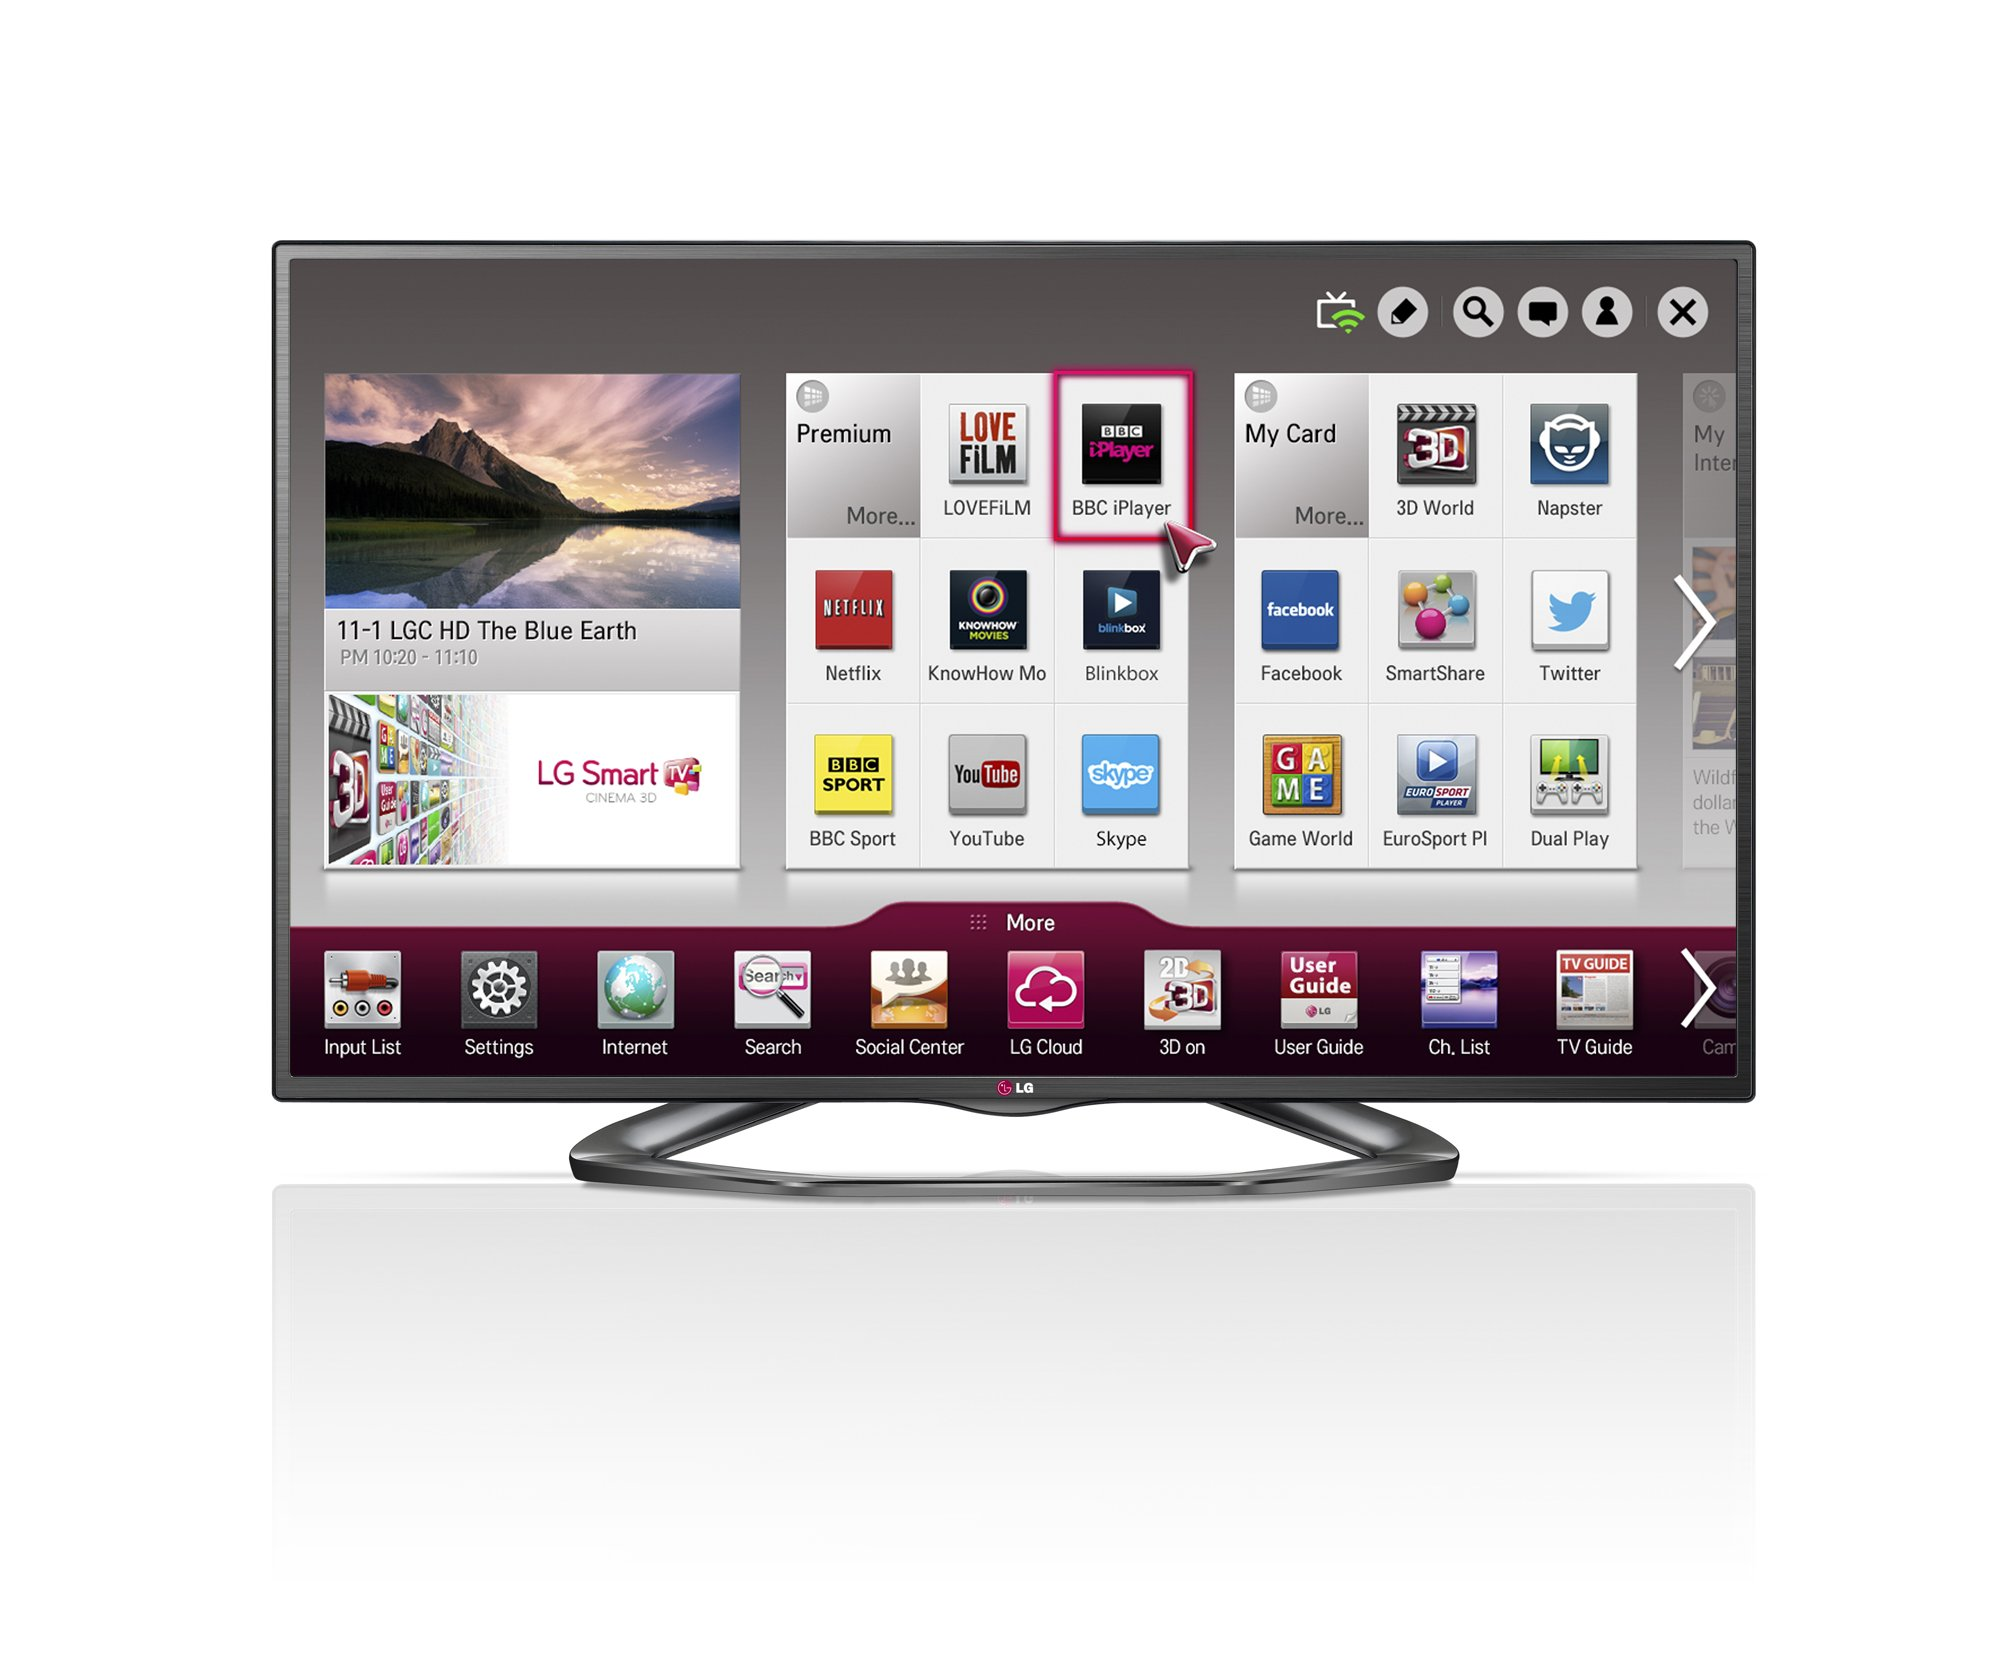 LG 32LA620V 32 Inch 3D LED Smart TV FHD Video Camera Ready WiFi: Amazon.es: Electrónica